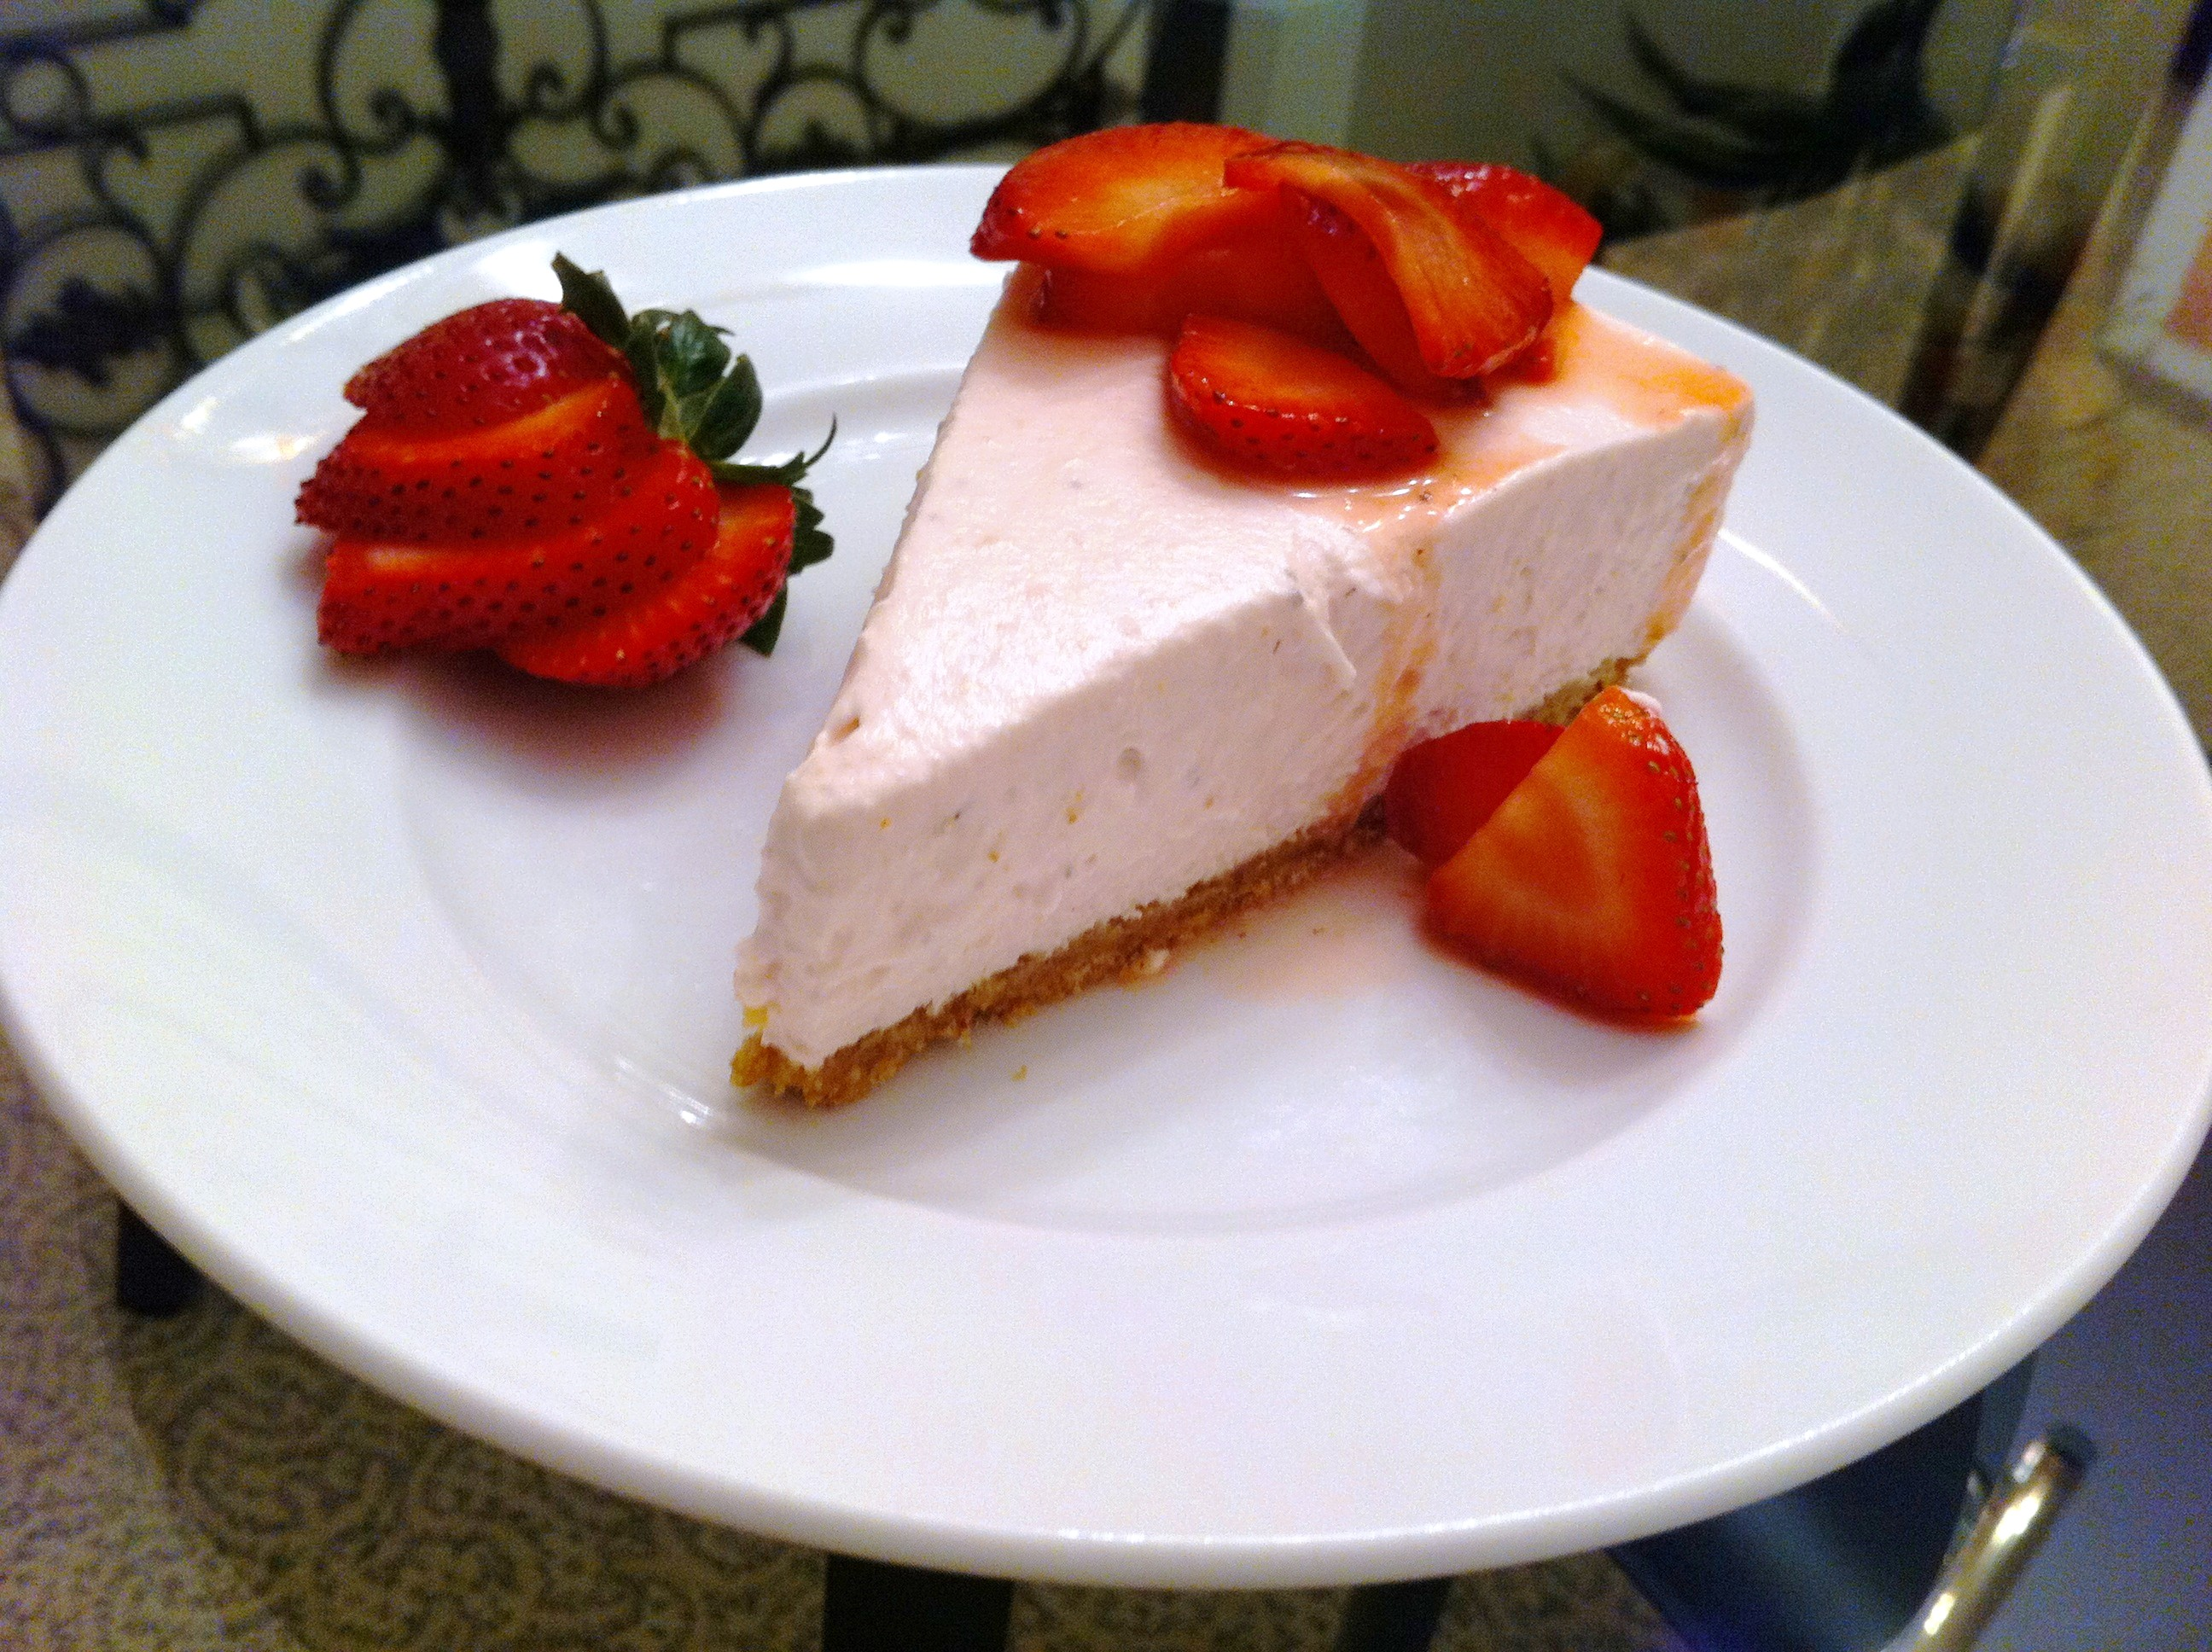 No Bake Strawberry Cheese Cake - Andicakes